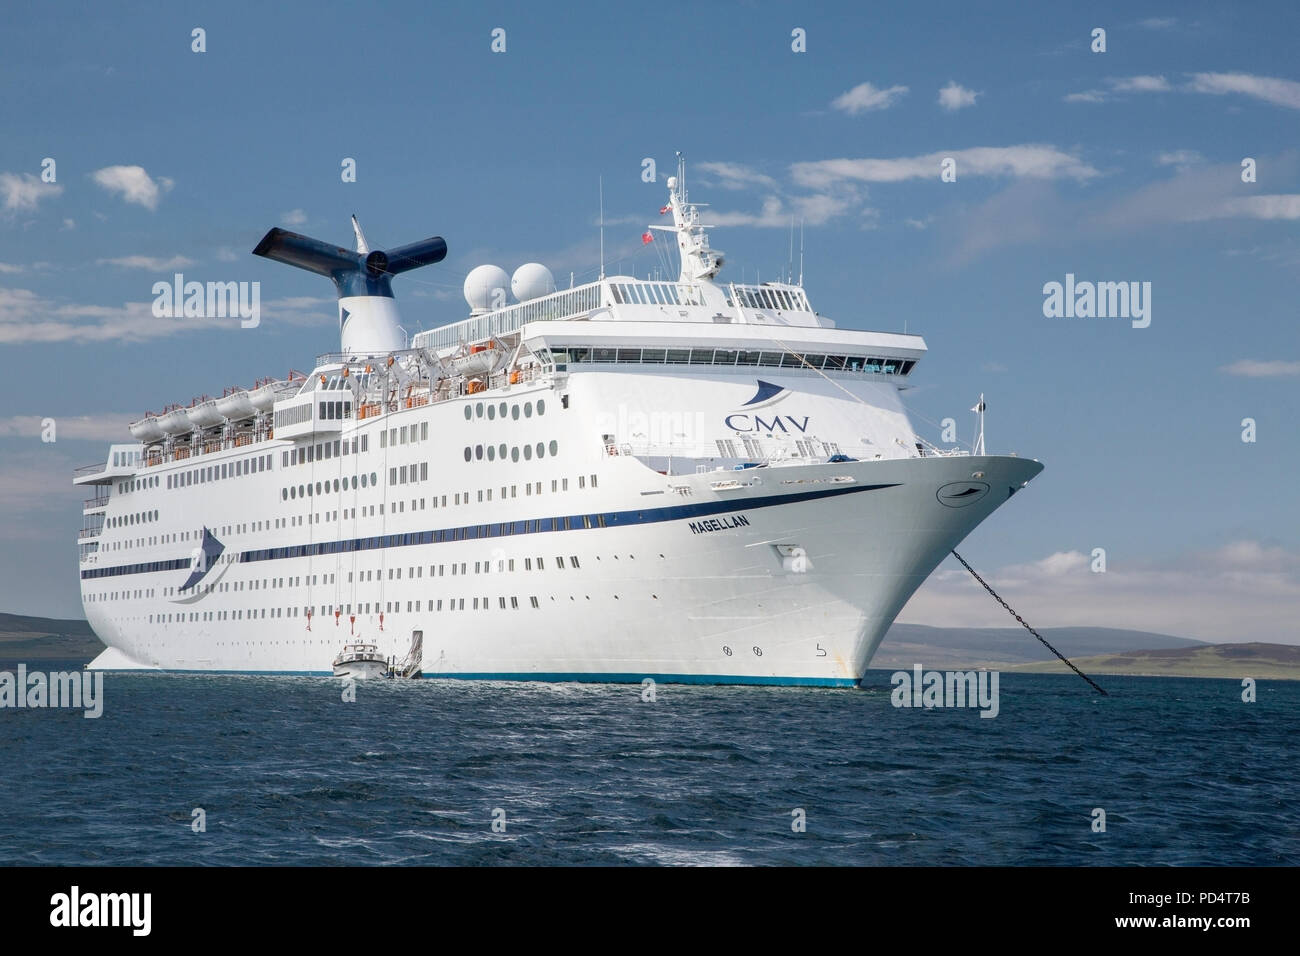 MS Magellan, a Cruise and Maritime Voyages cruise ship, at anchor in Orkney, Scotland - Stock Image